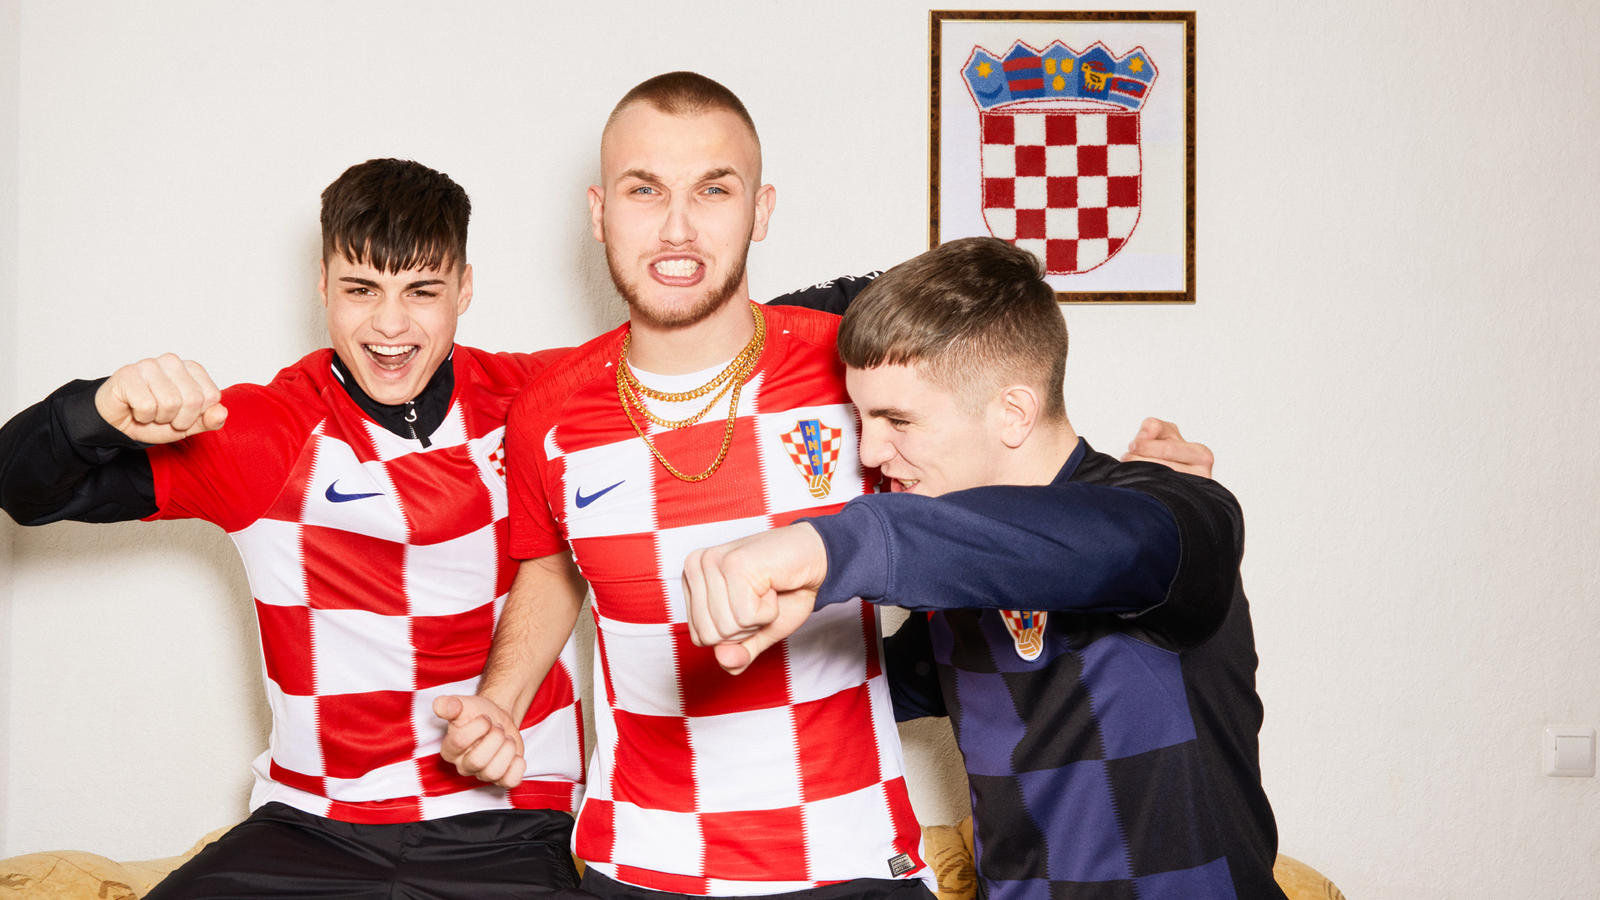 reputable site ae800 7bf83 Check It: Croatia's New Kits Are Bold and Beautiful - Nike News